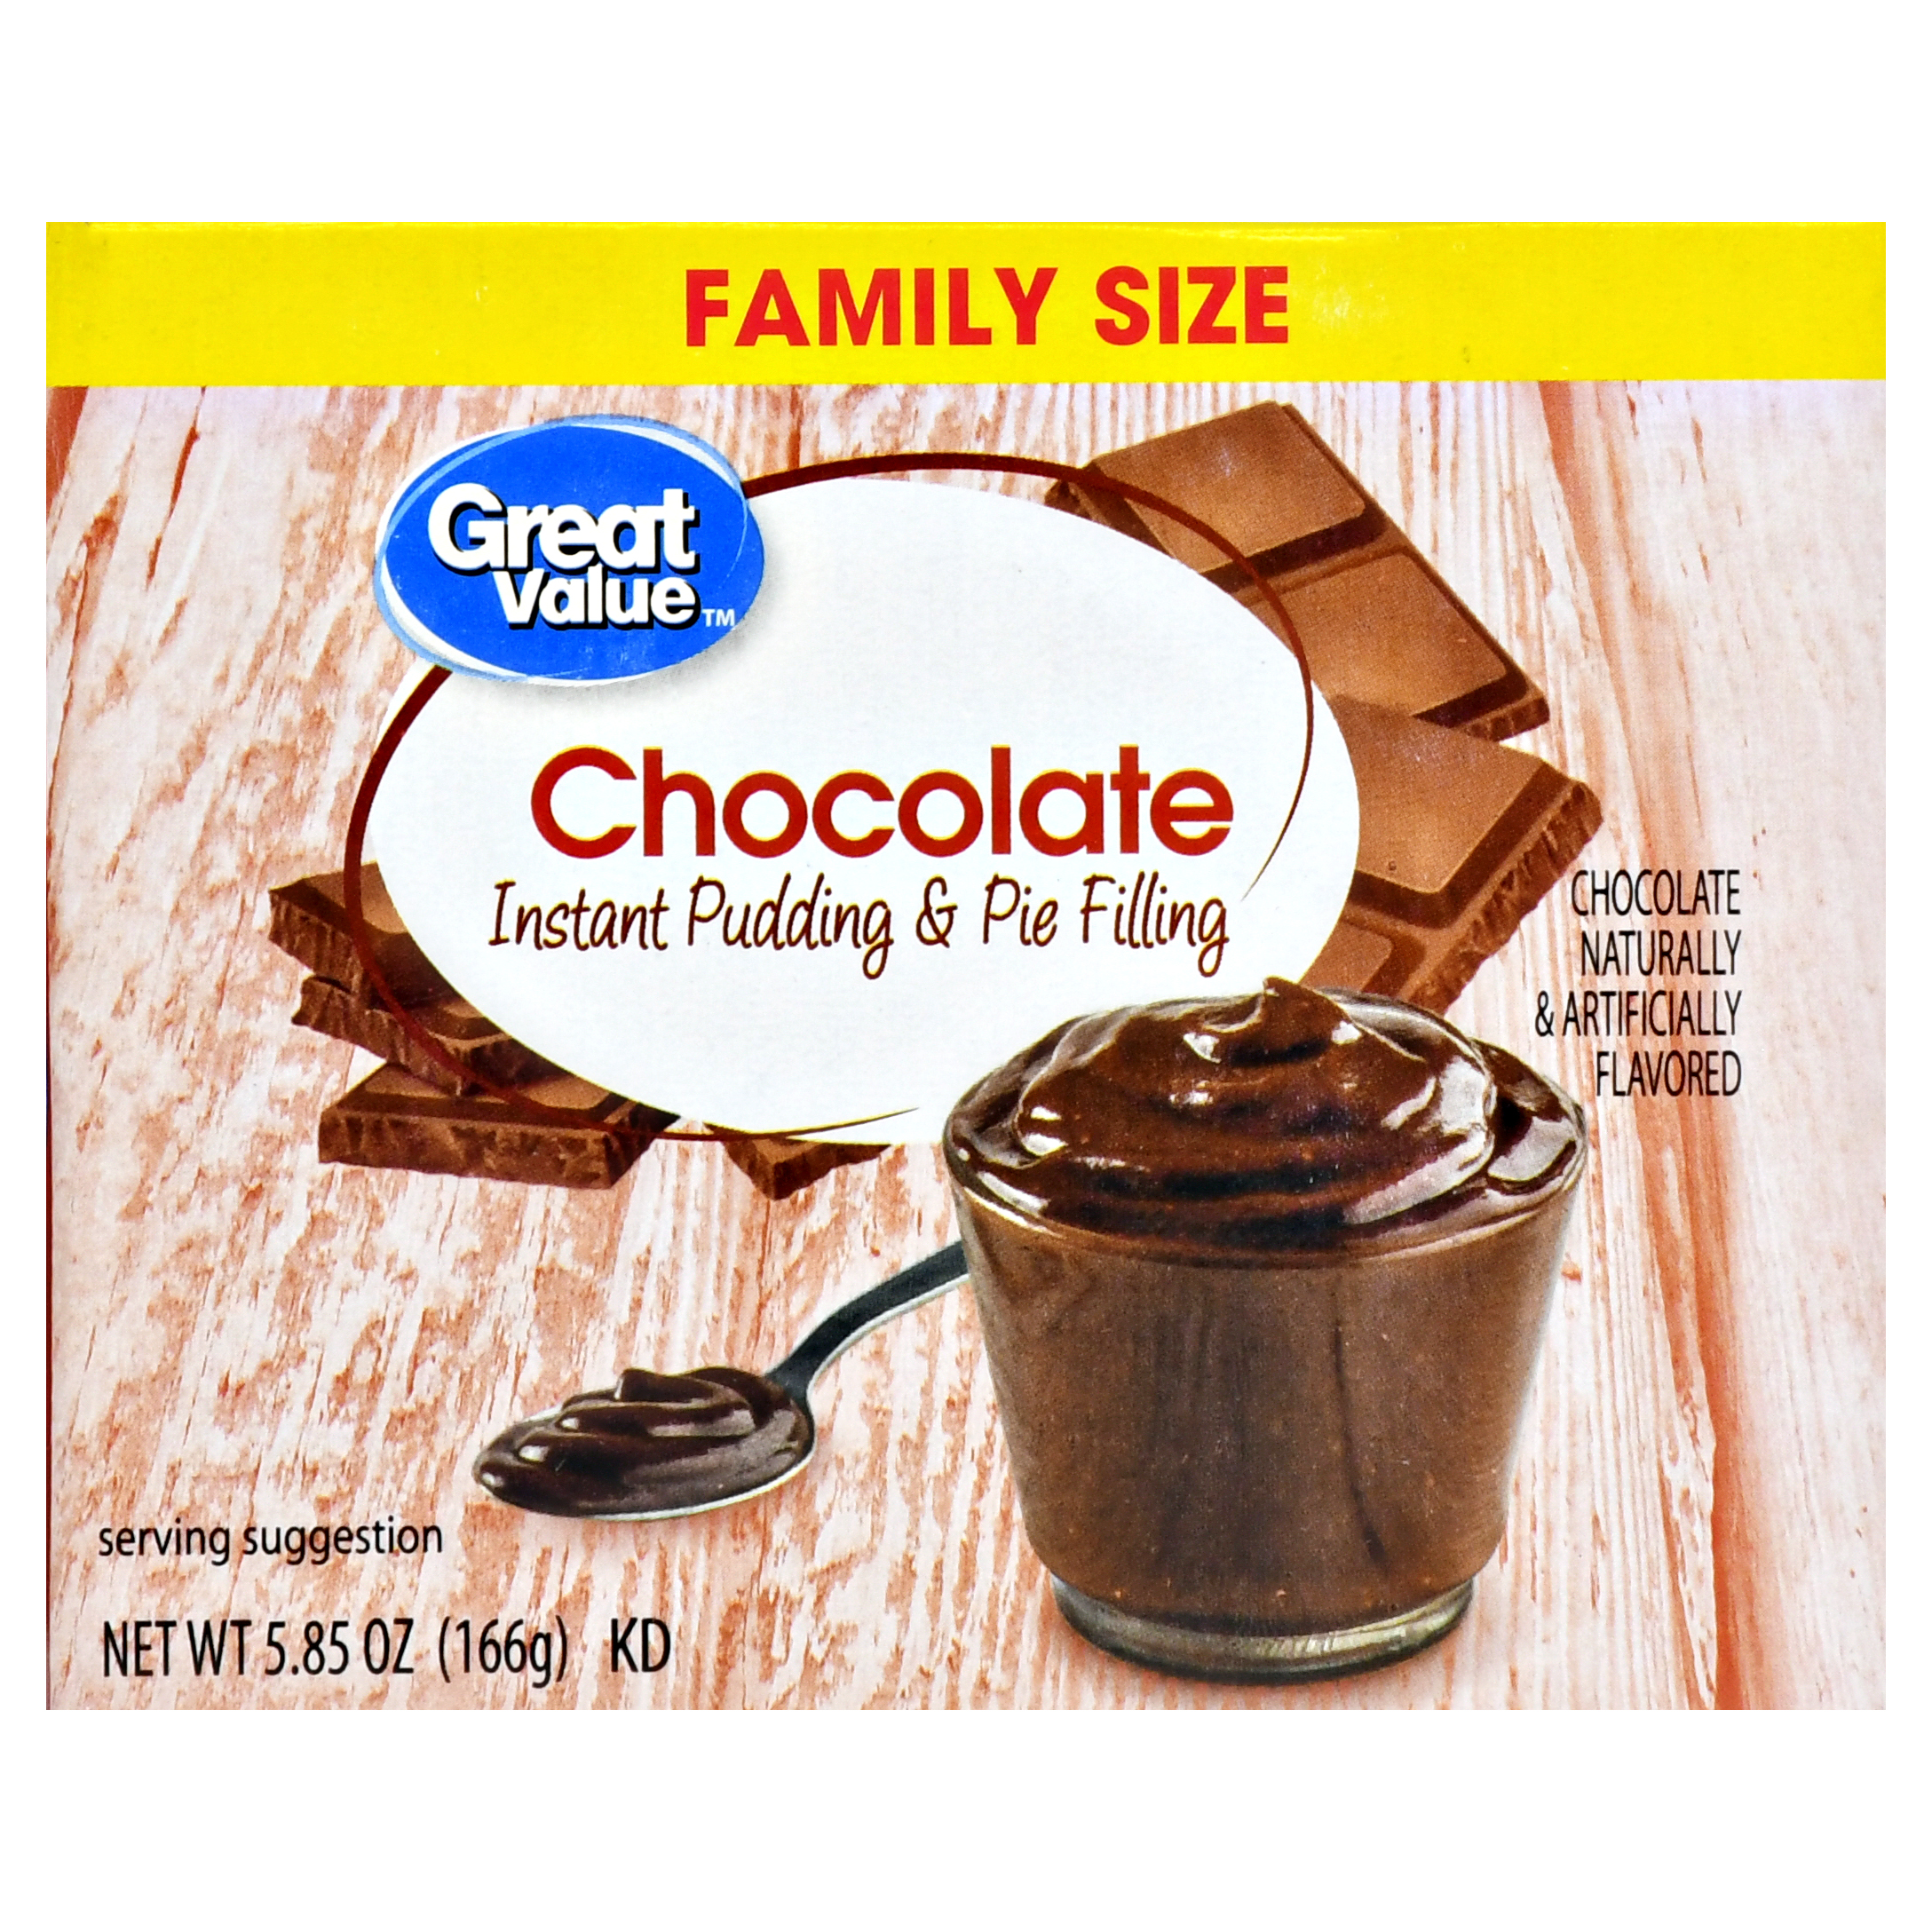 (3 Pack) Great value instant pudding & pie filling, family size, chocolate, 5.85 oz